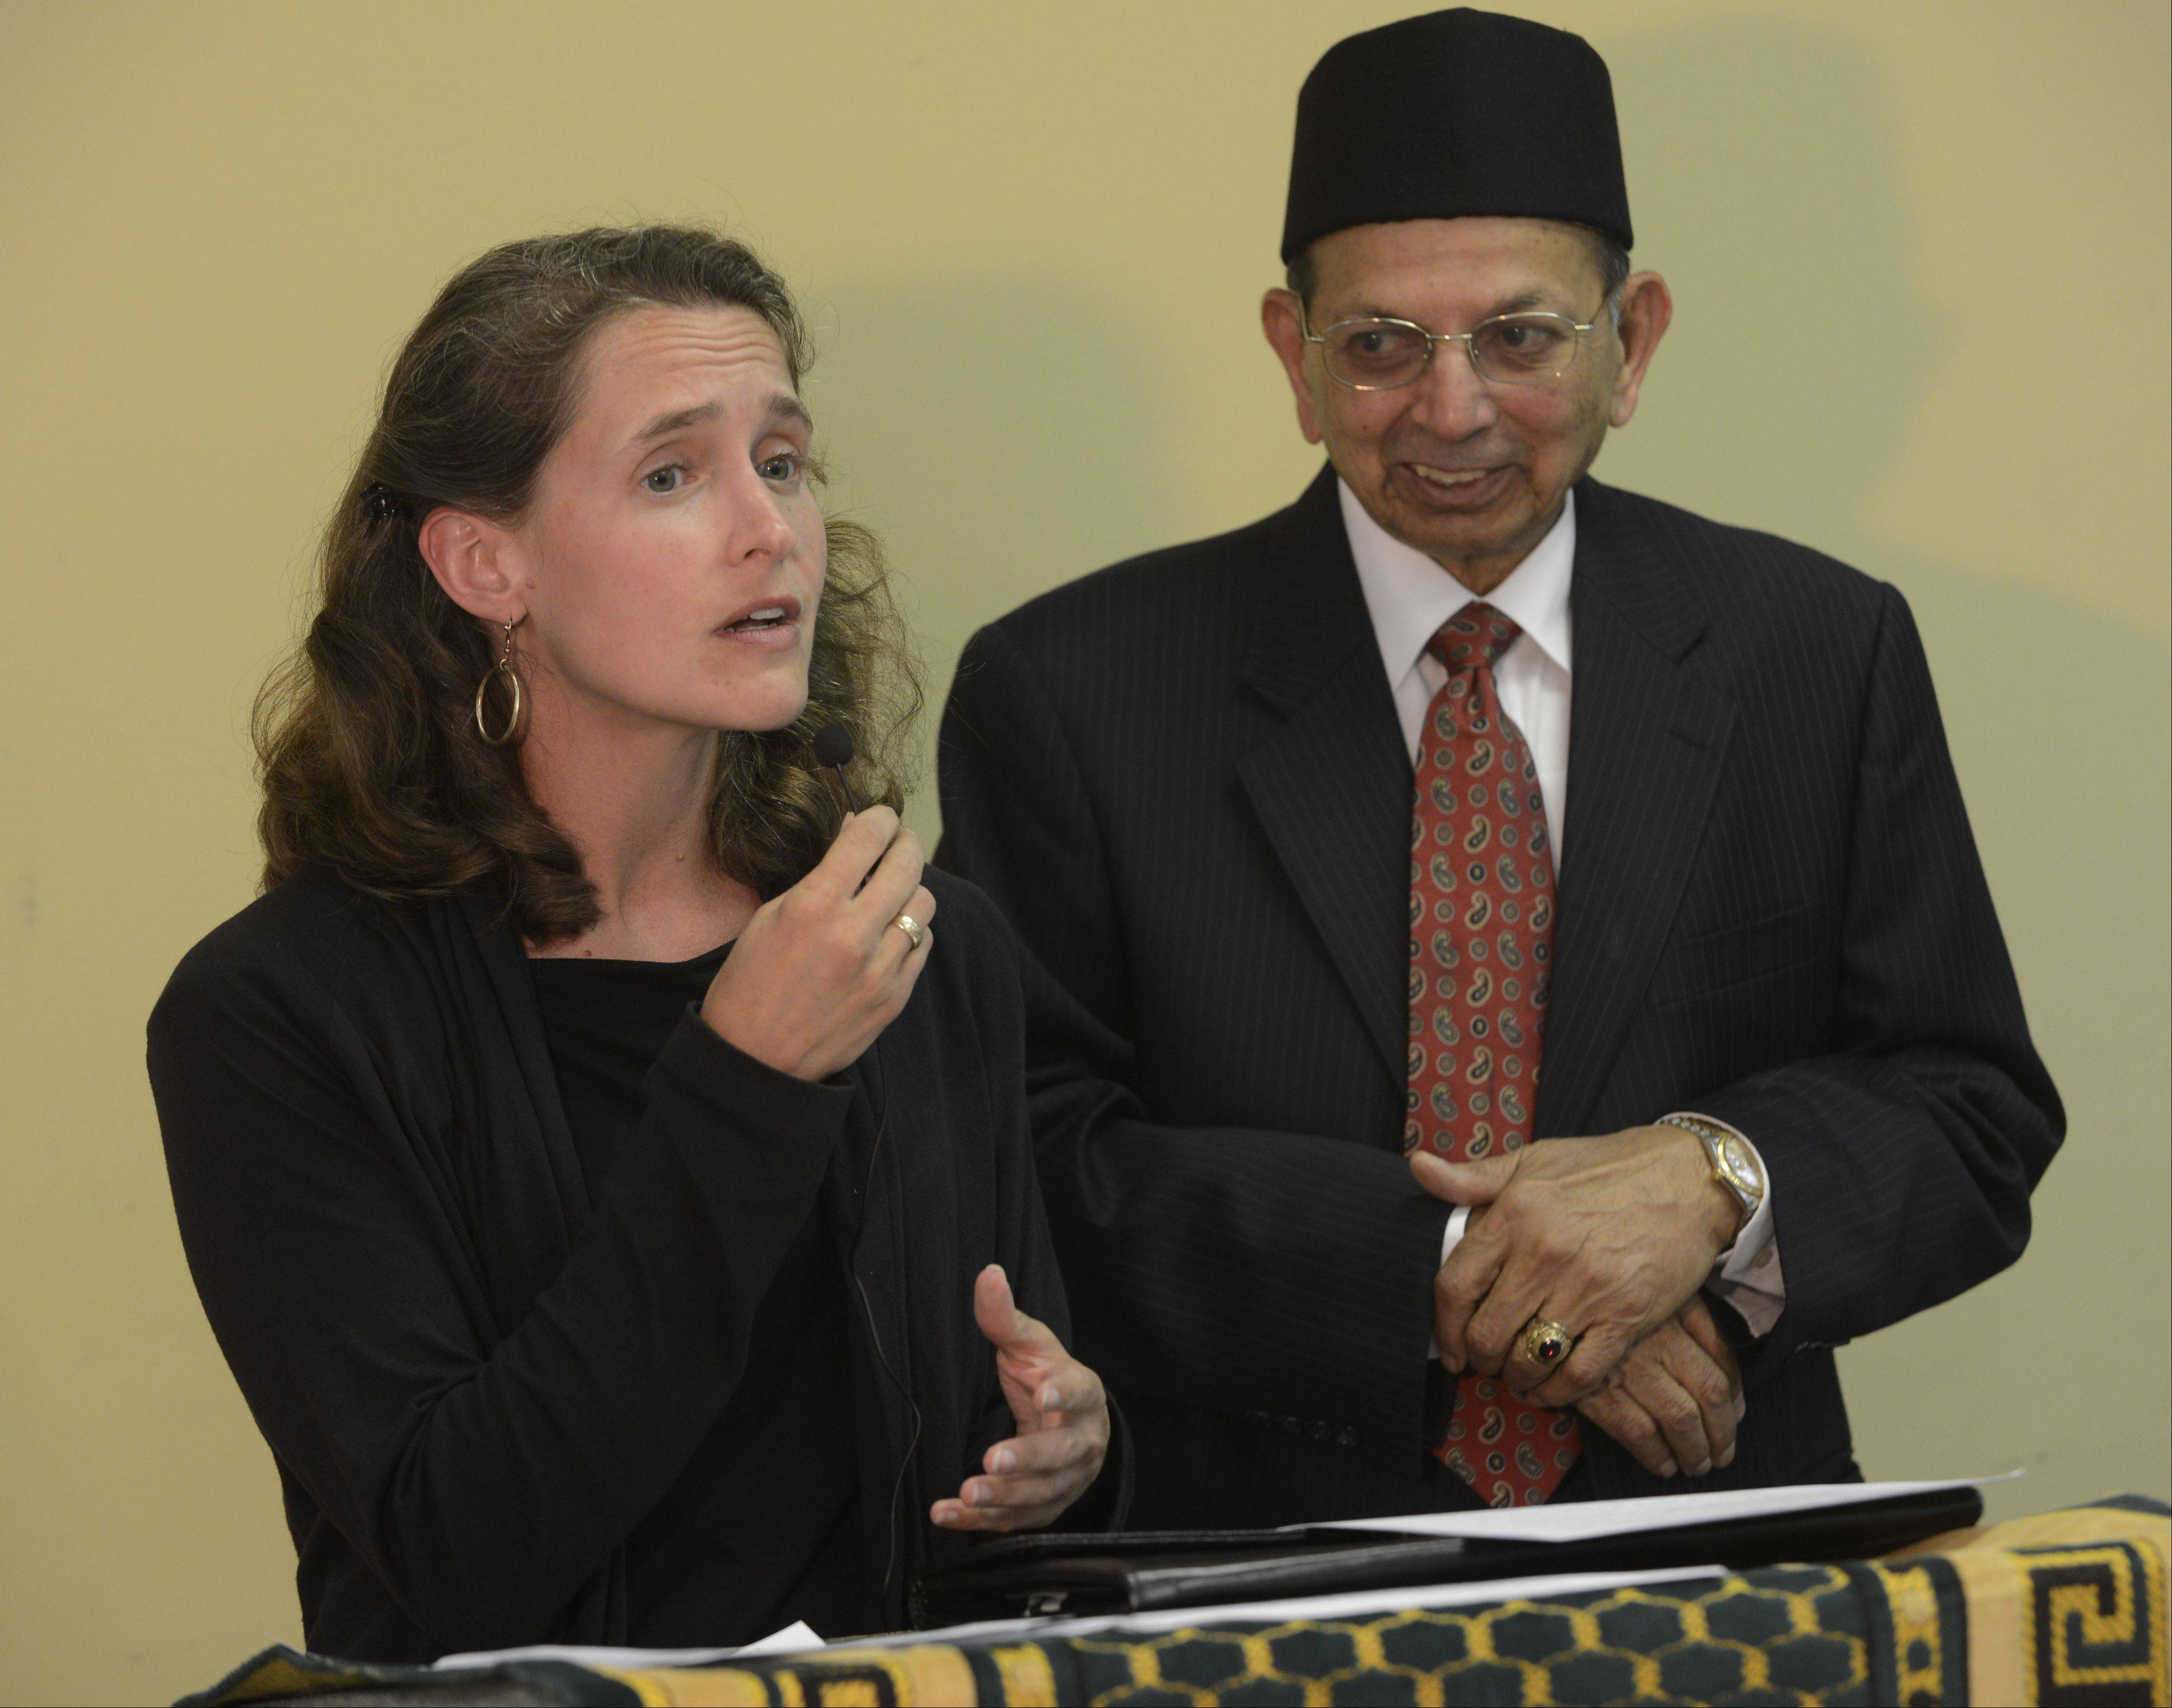 State Rep. Michelle Mussman speaks while standing with Dr. Khalid Sami during the iftar dinner Thursday night at Masjid Al Huda in Schaumburg.